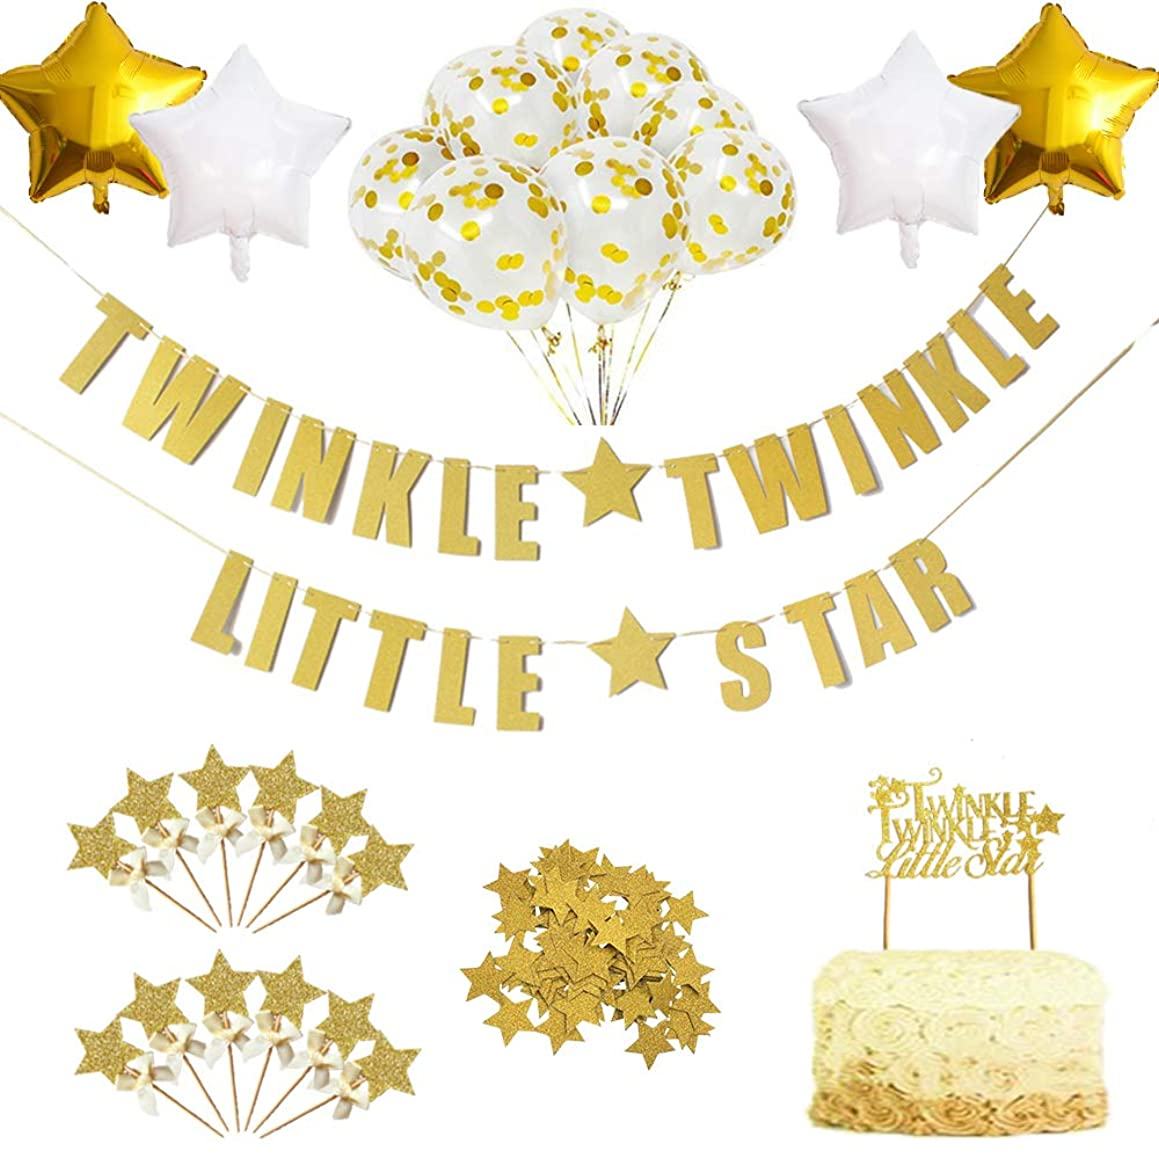 Twinkle Star Theme Party Decorations Kit-Glitter Letter Banner Dessert Table Confettie Cake Toppers Star Balloons for Kids Birthday New Year and Christmas Festa Party